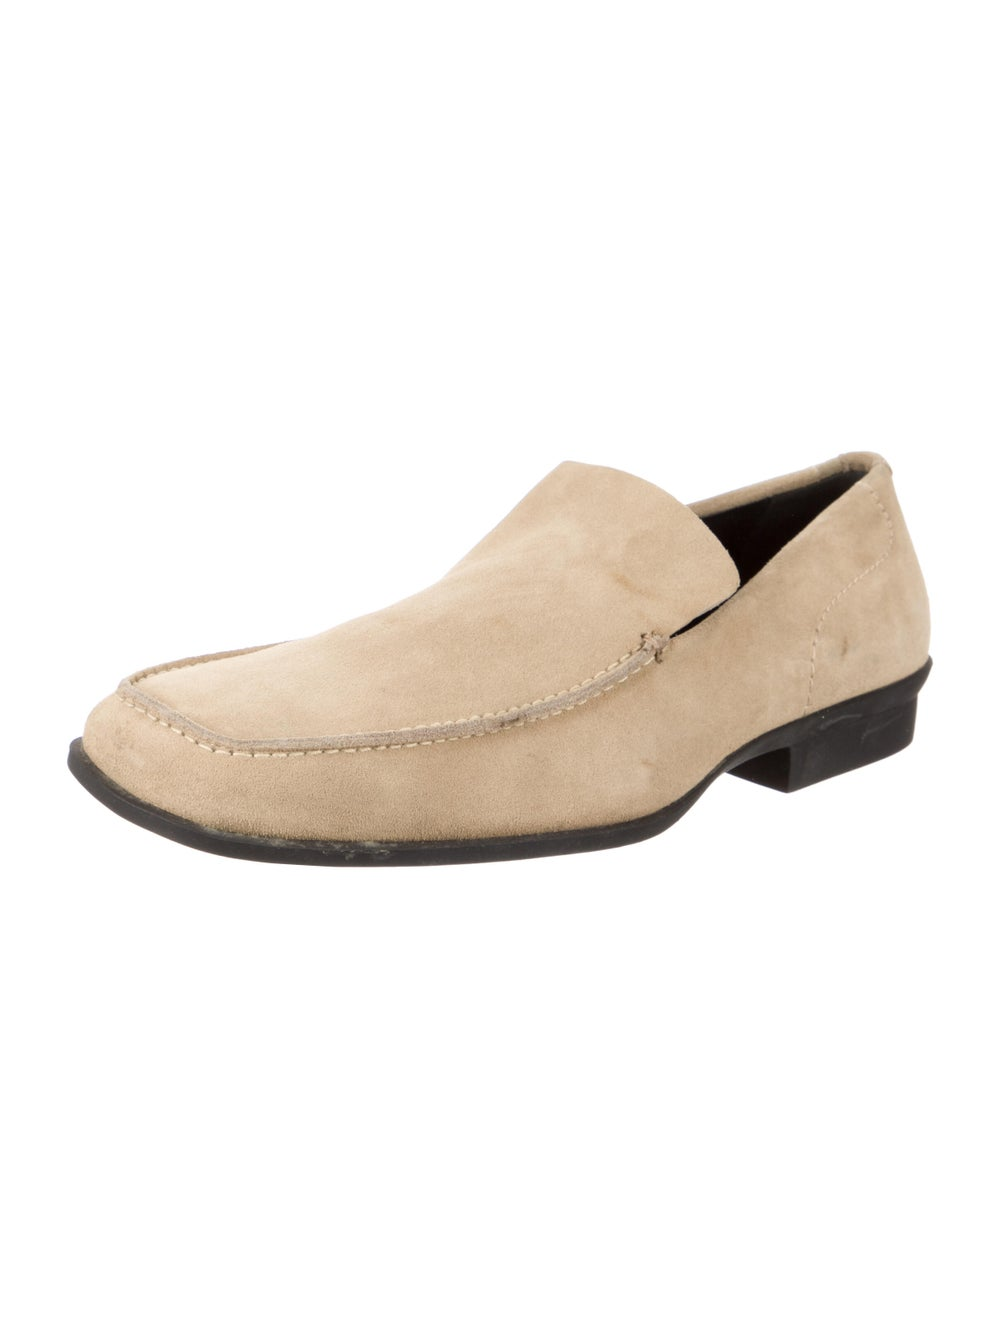 Gucci Suede Loafers - image 2